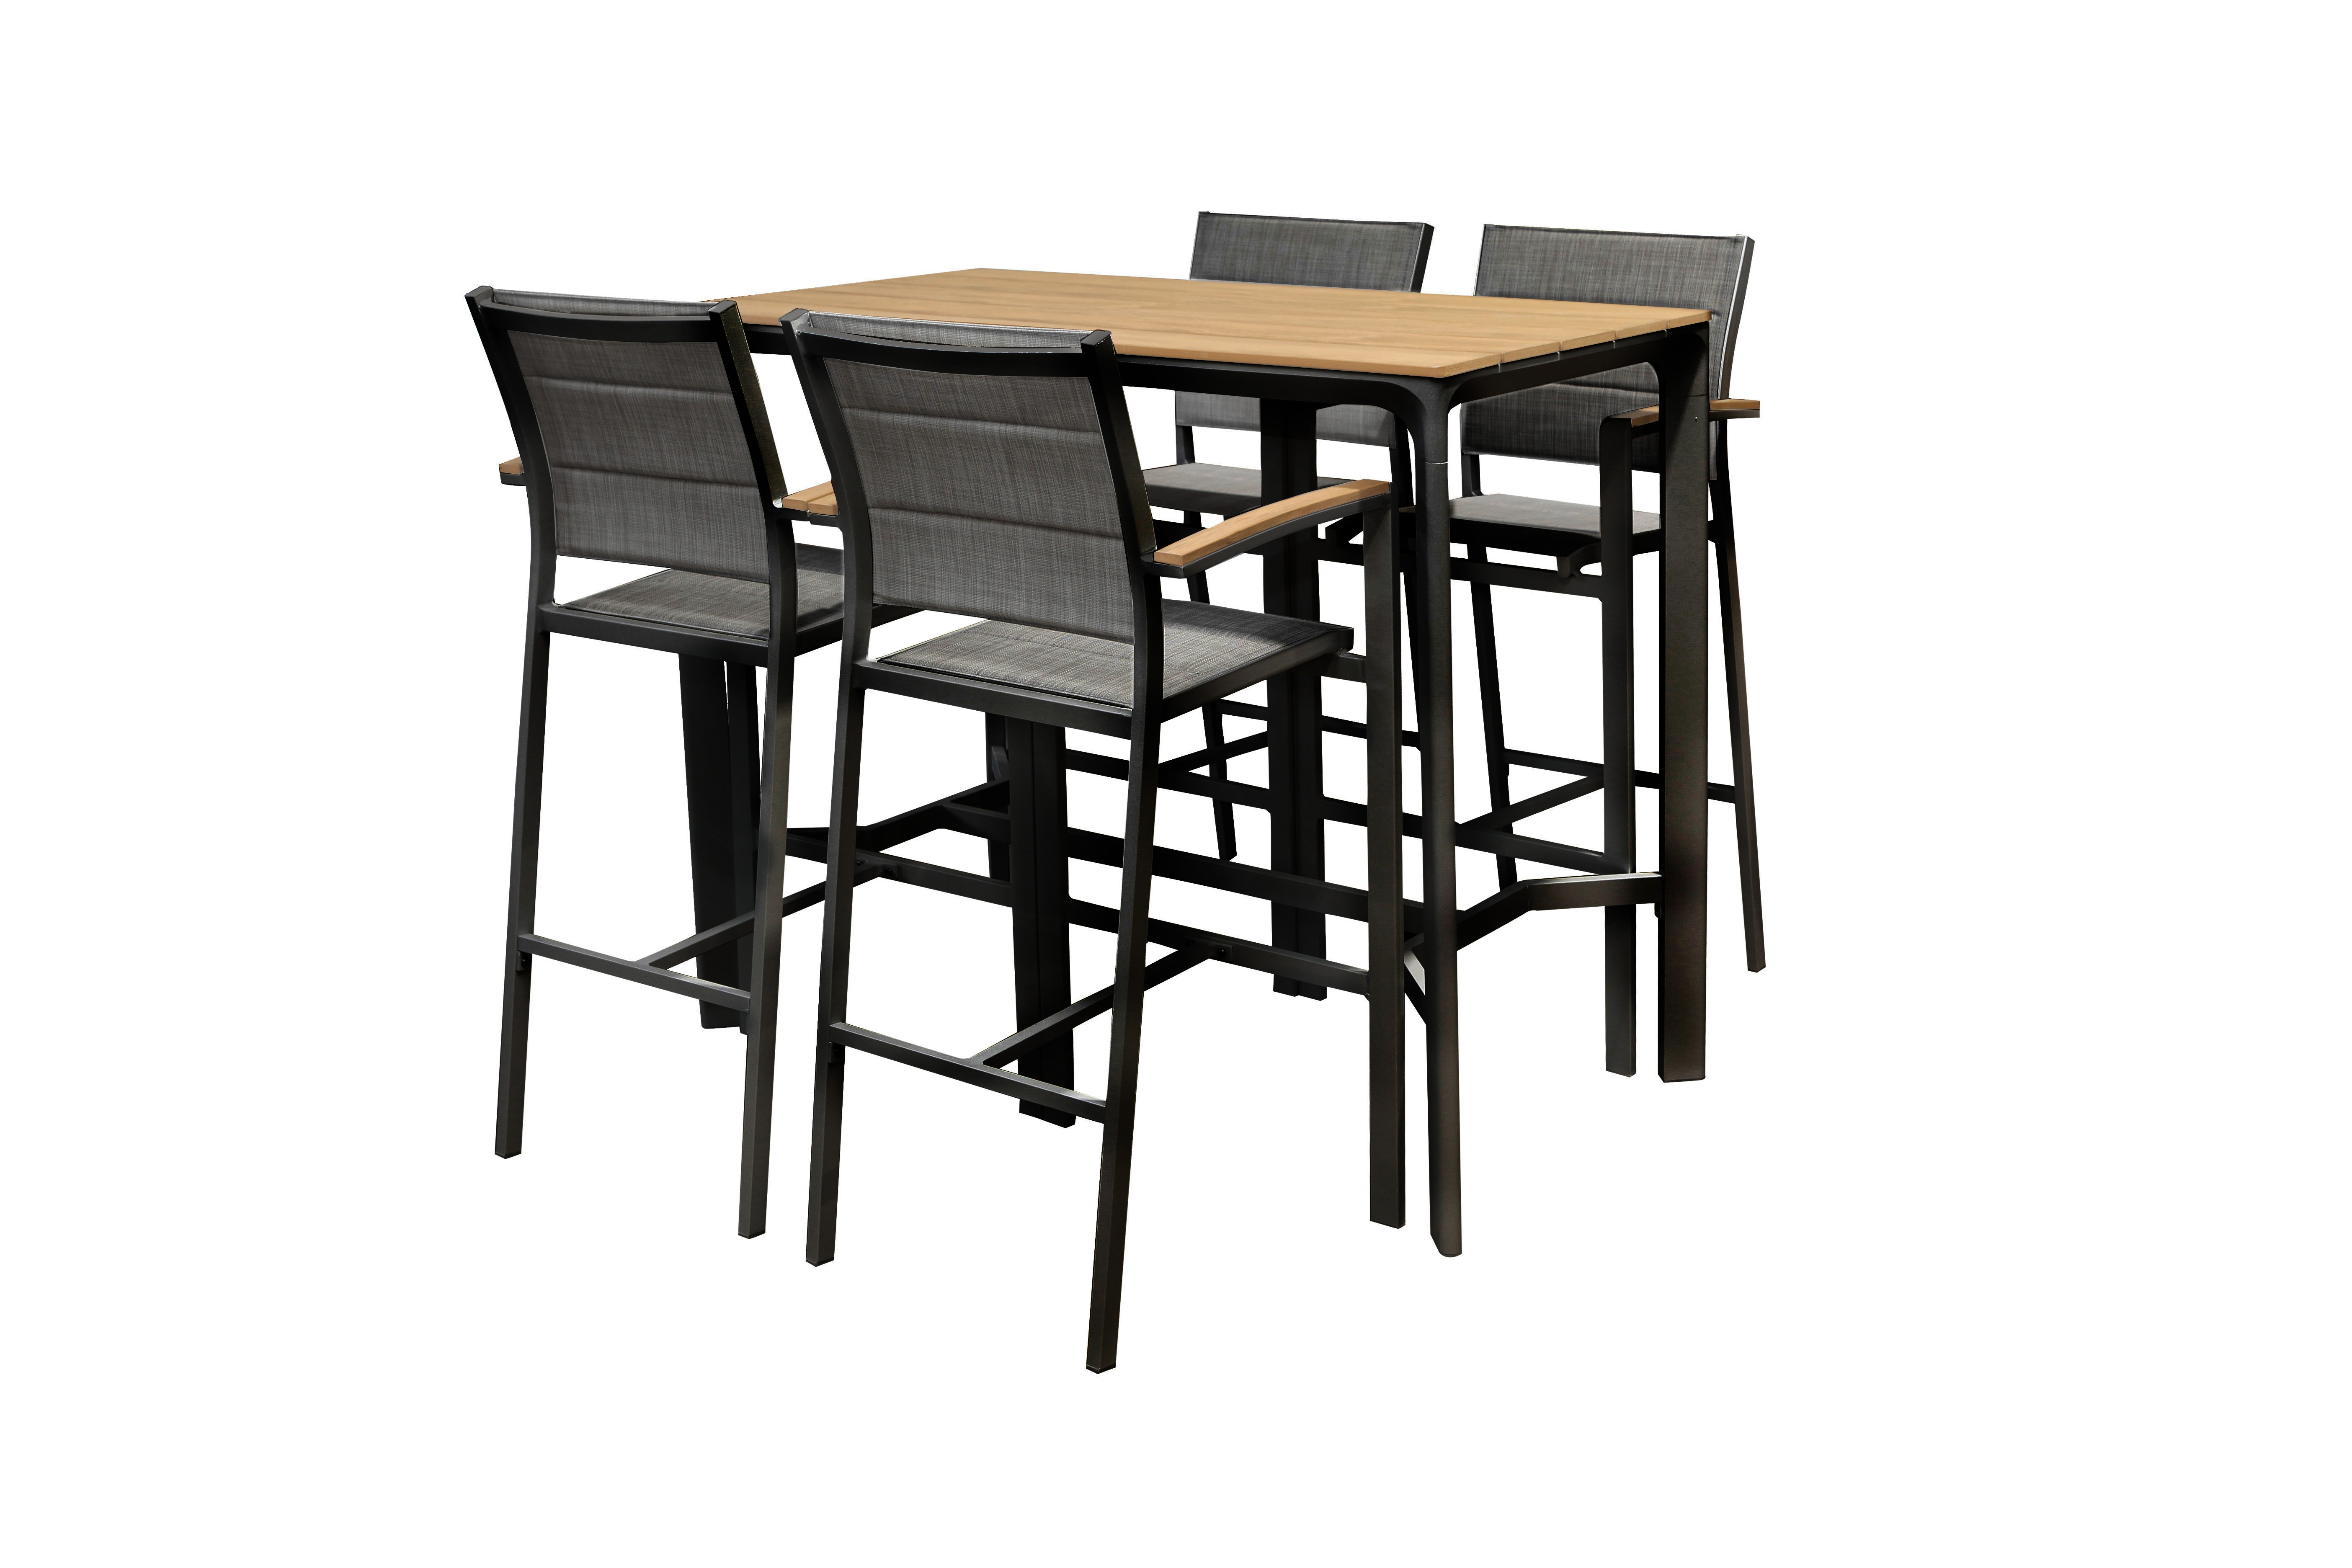 Picture of: Fina 5pce Bar Setting Black Outdoor Bar Settings Outdoor Dining